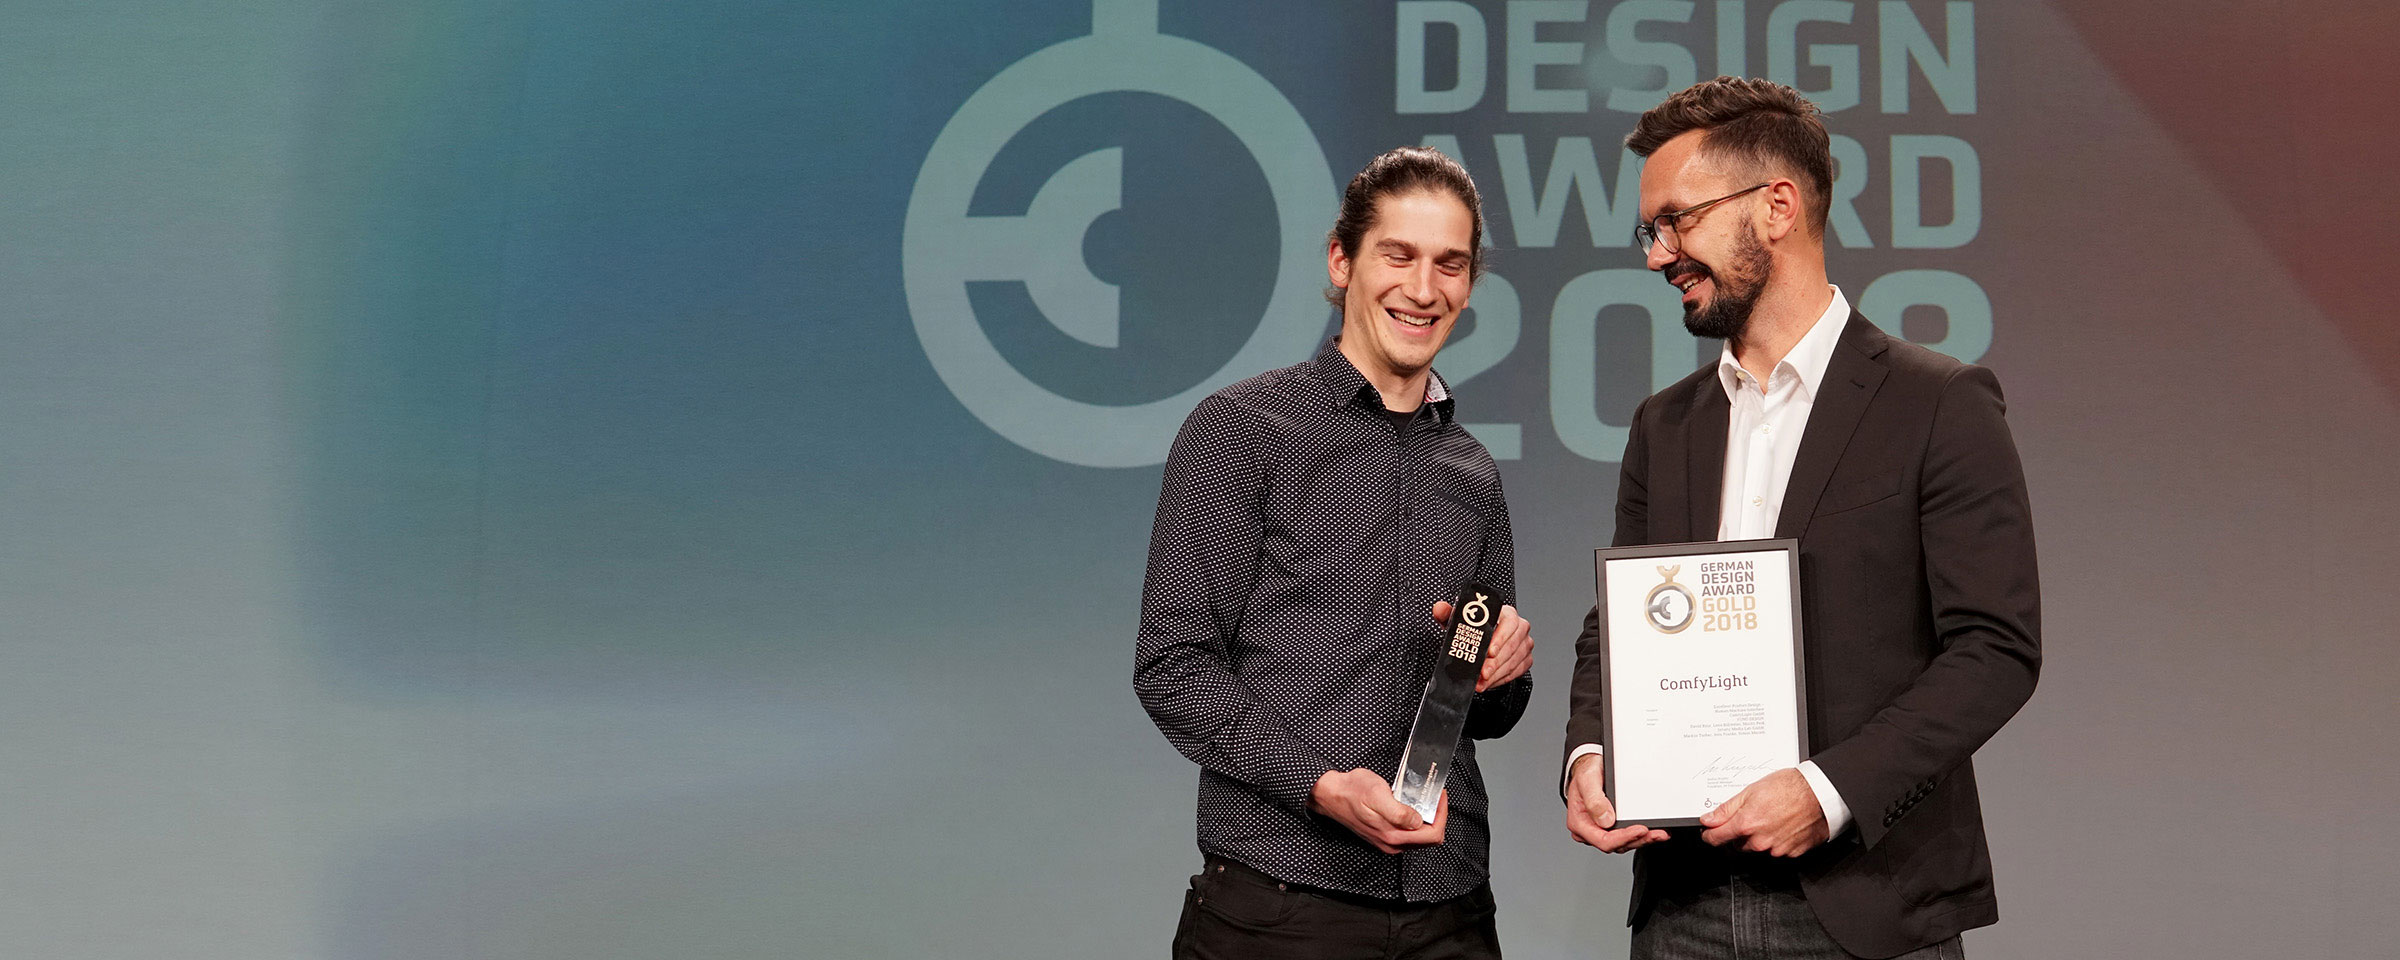 Intuity Media Lab wins the German Design Award 2018 Gold